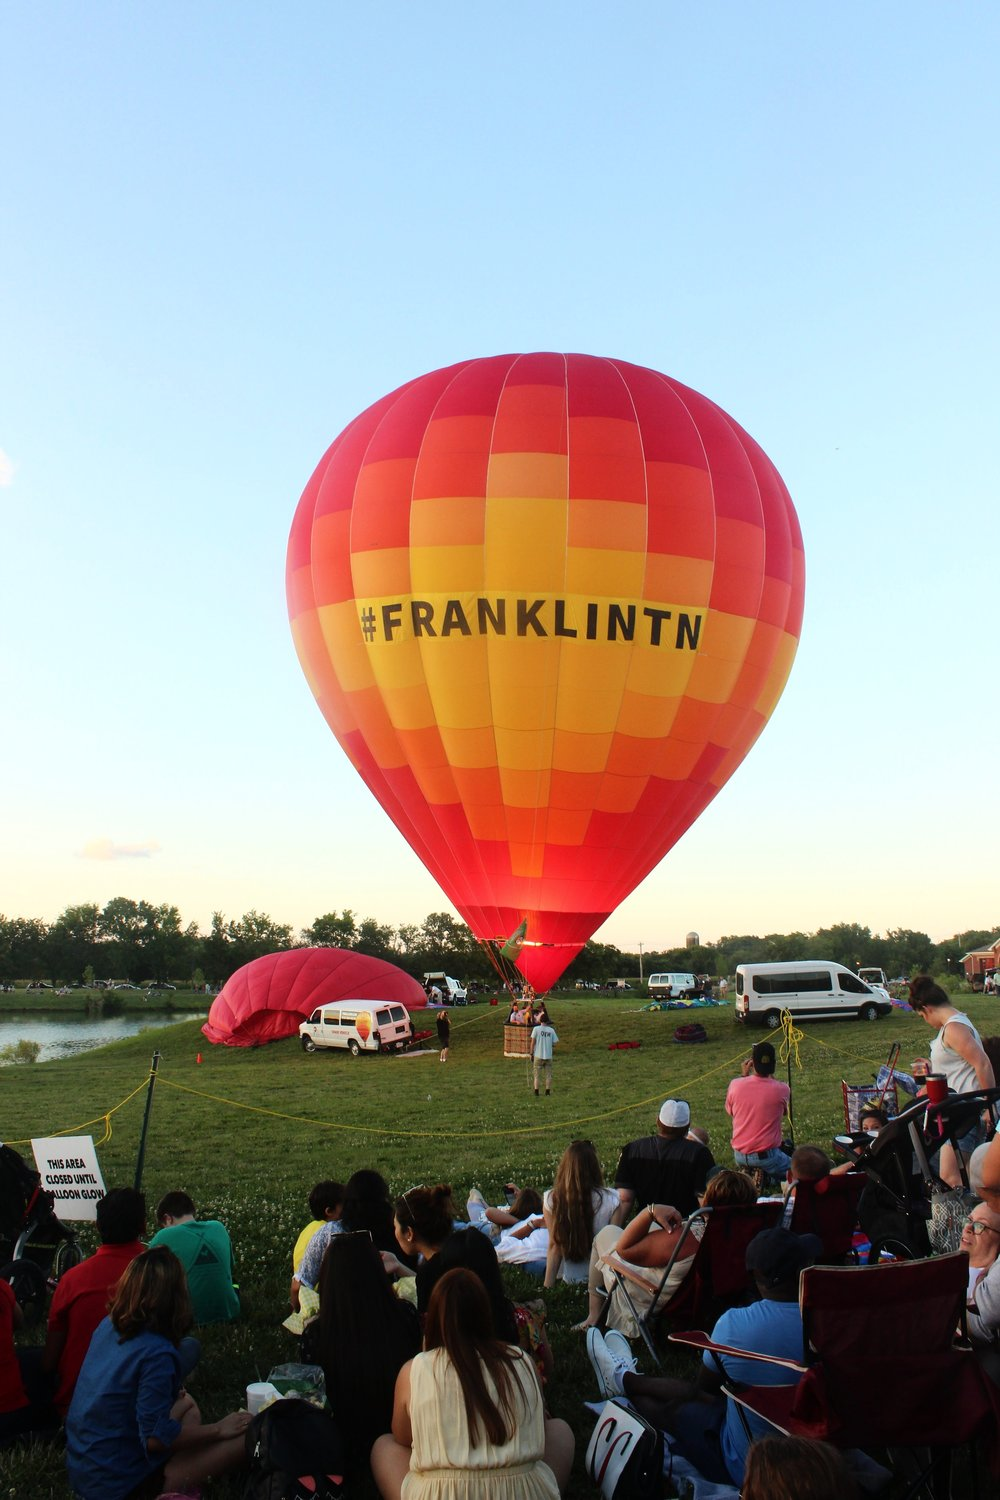 & went to the Hot Air Balloon Festival!